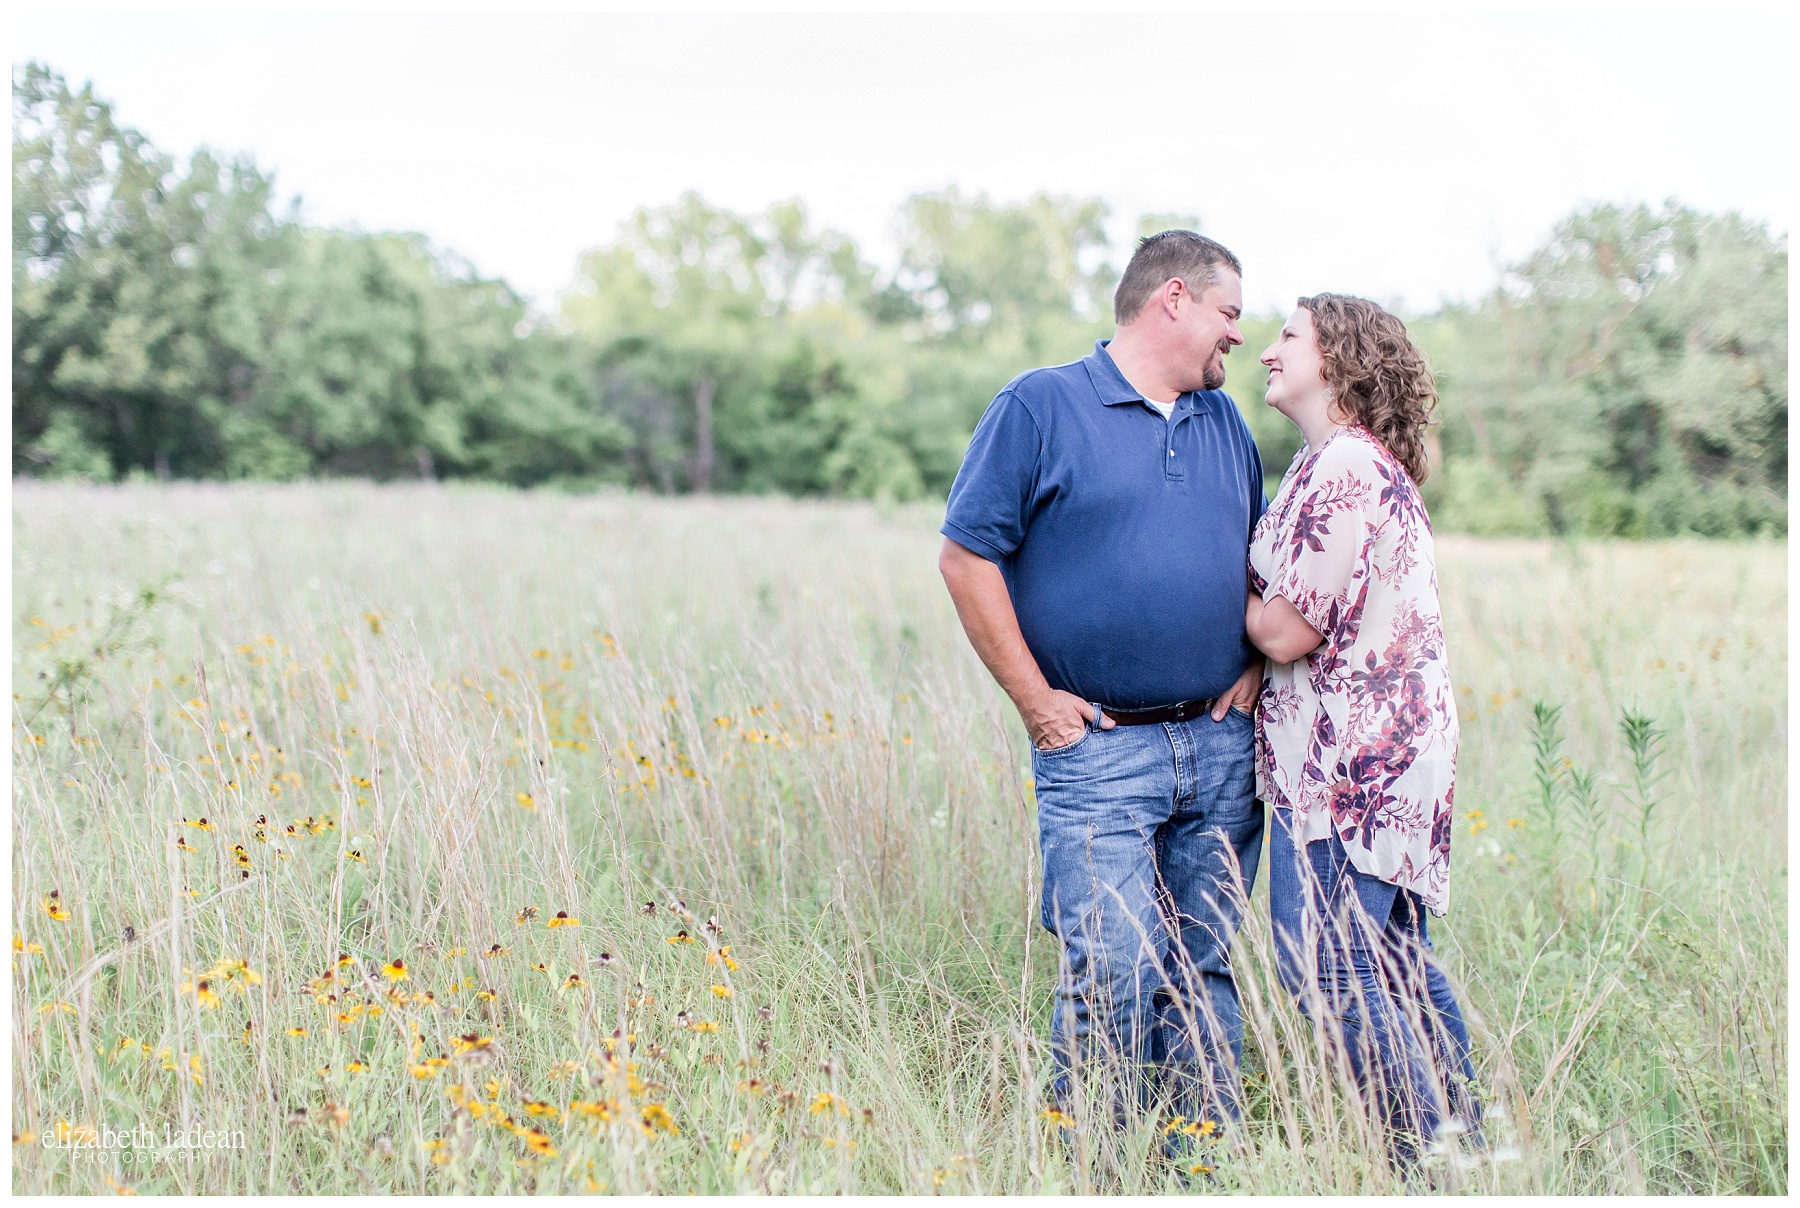 Kansas-City-Engagement-Photography-Shawnee-Mission-H+JJ2017-Elizabeth-Ladean-Photography-photo_1917.jpg